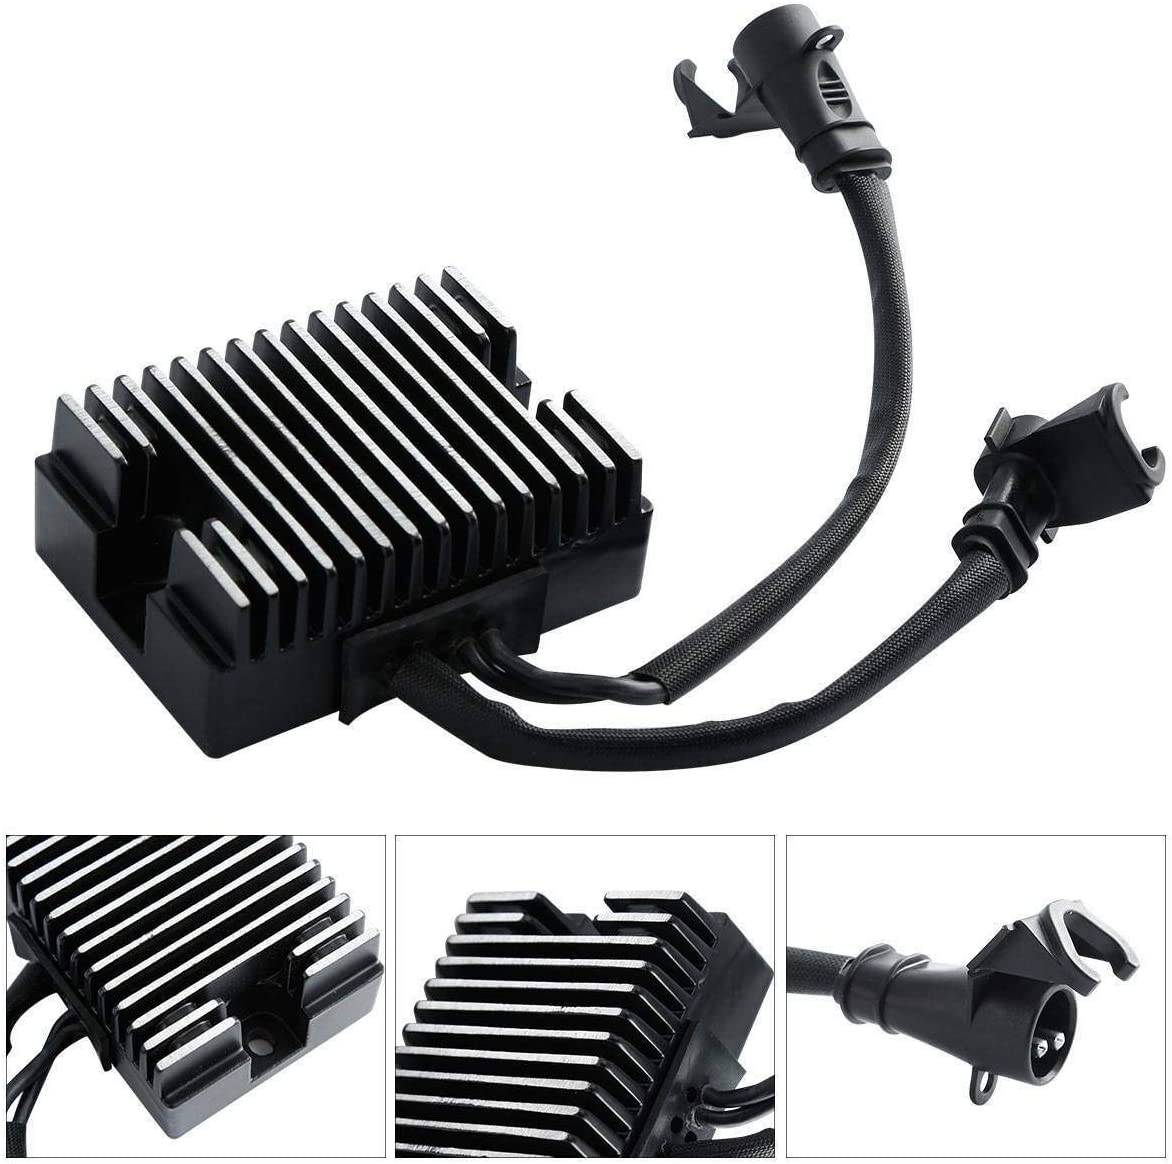 TCMT Voltage Regulator Rectifier Fits For Harley-Davidson Sportster XL 883 1200 2009-2013